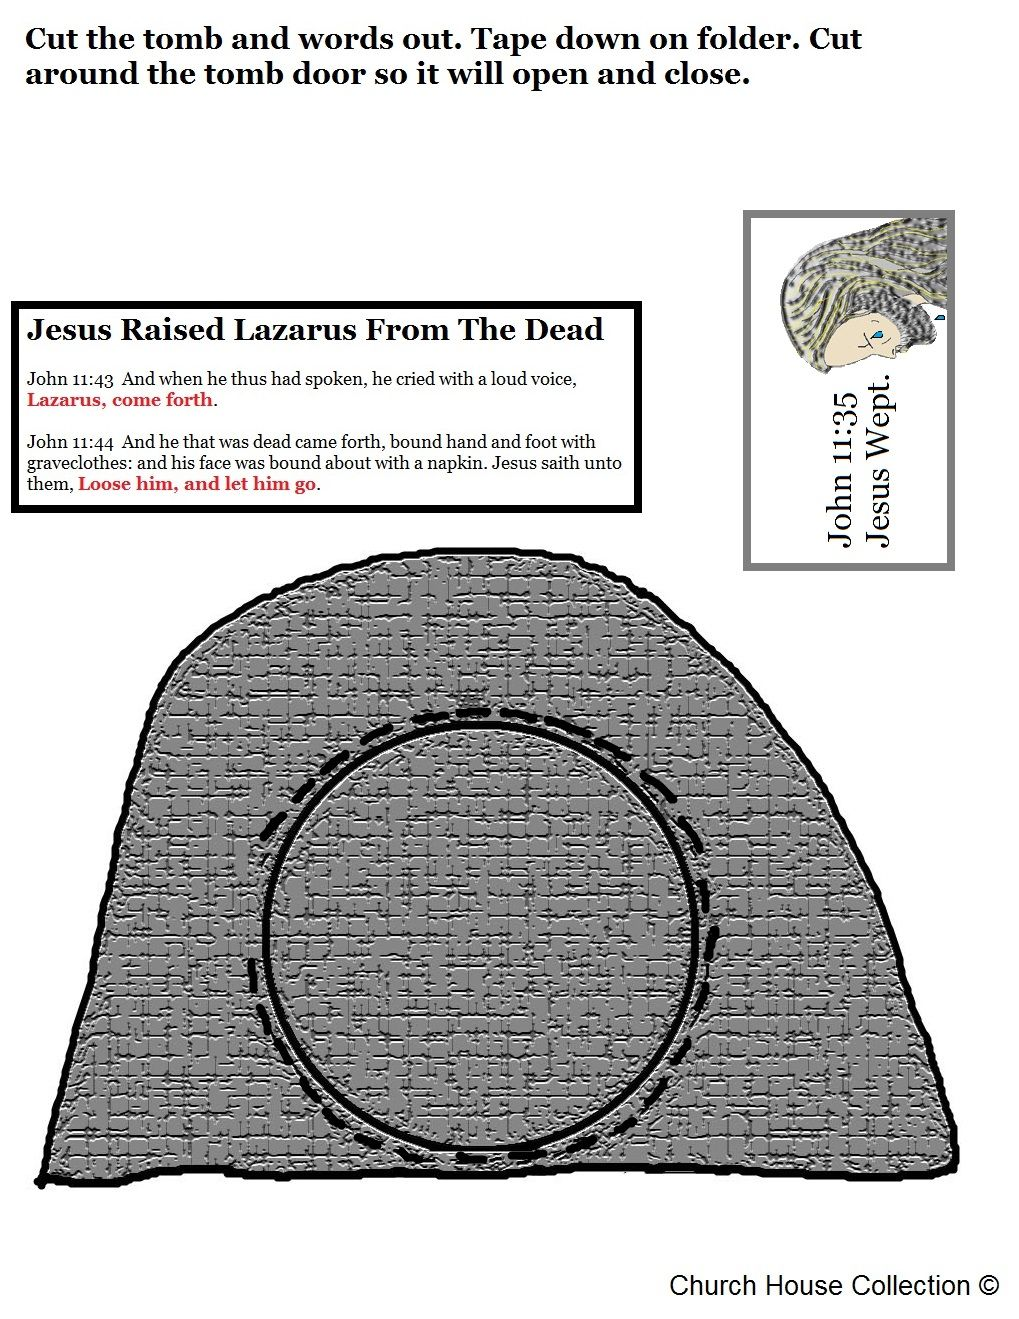 Free coloring pages jesus raises lazarus - Church House Collection Blog Jesus Raised Lazarus From The Dead Lapbook Craft For Kids In